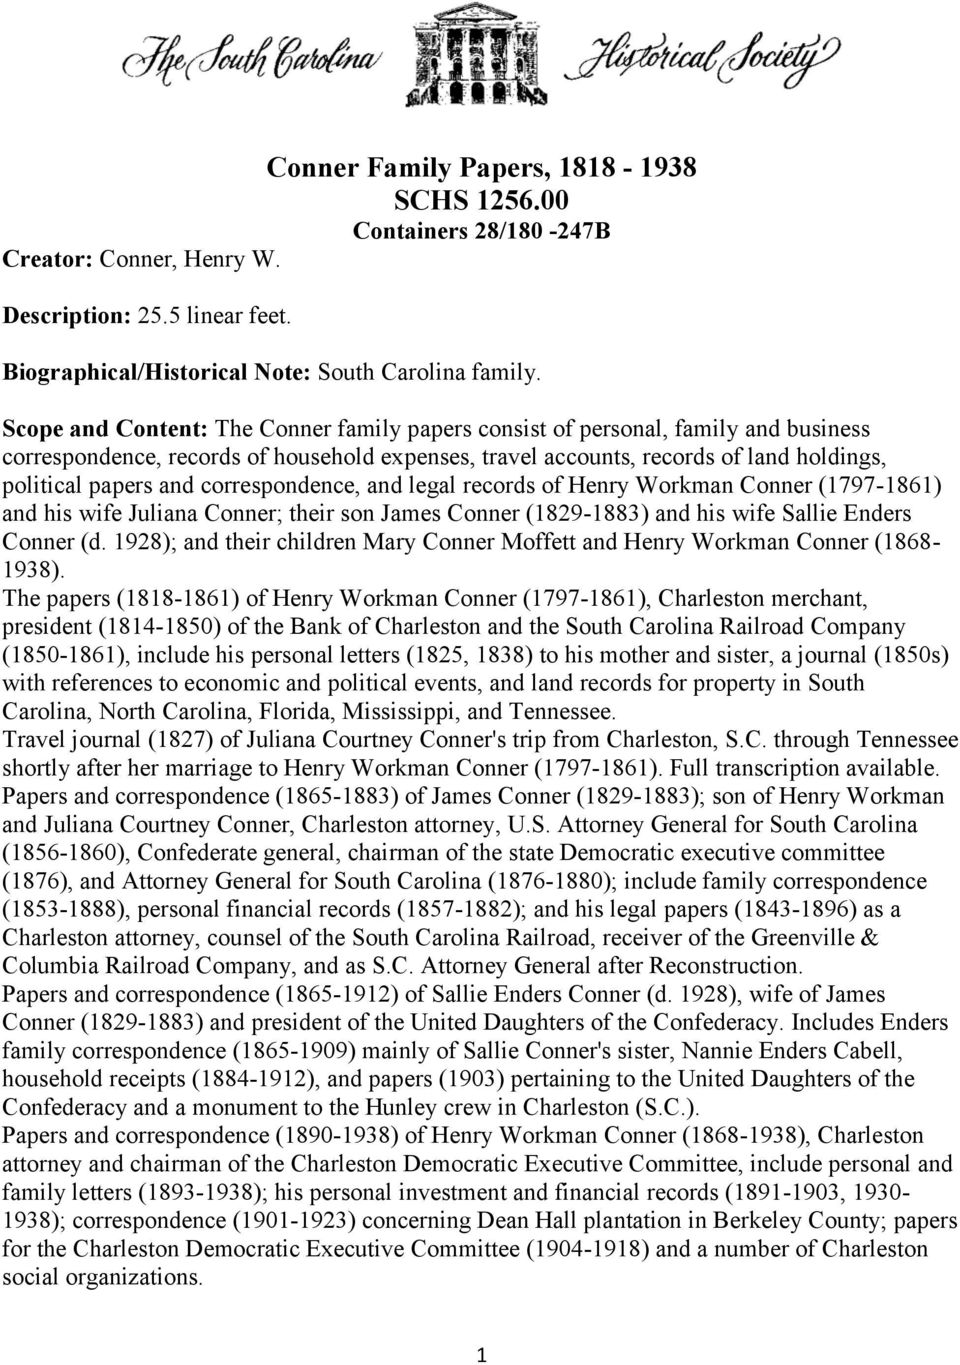 correspondence, and legal records of Henry Workman Conner (1797-1861) and his wife Juliana Conner; their son James Conner (1829-1883) and his wife Sallie Enders Conner (d.